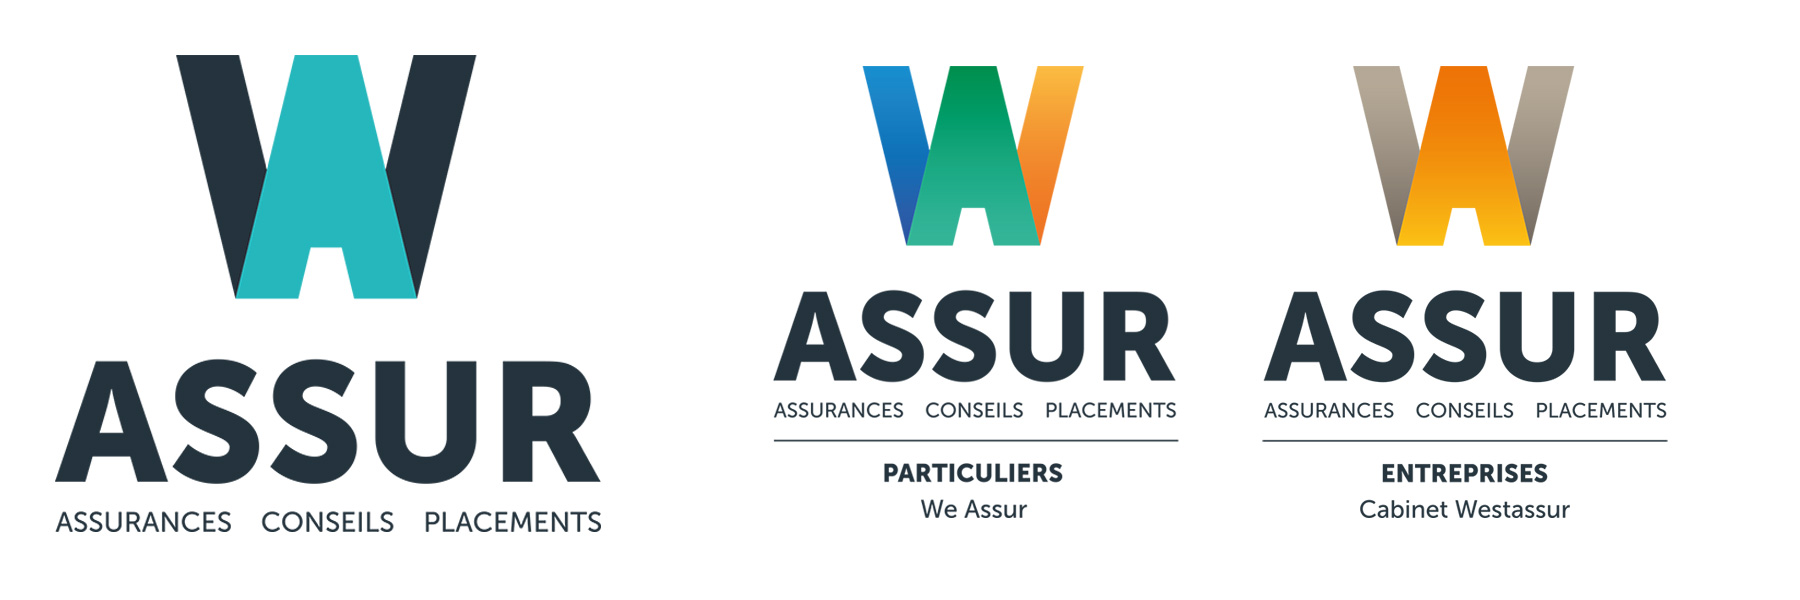 assurance w assur west assur we assur